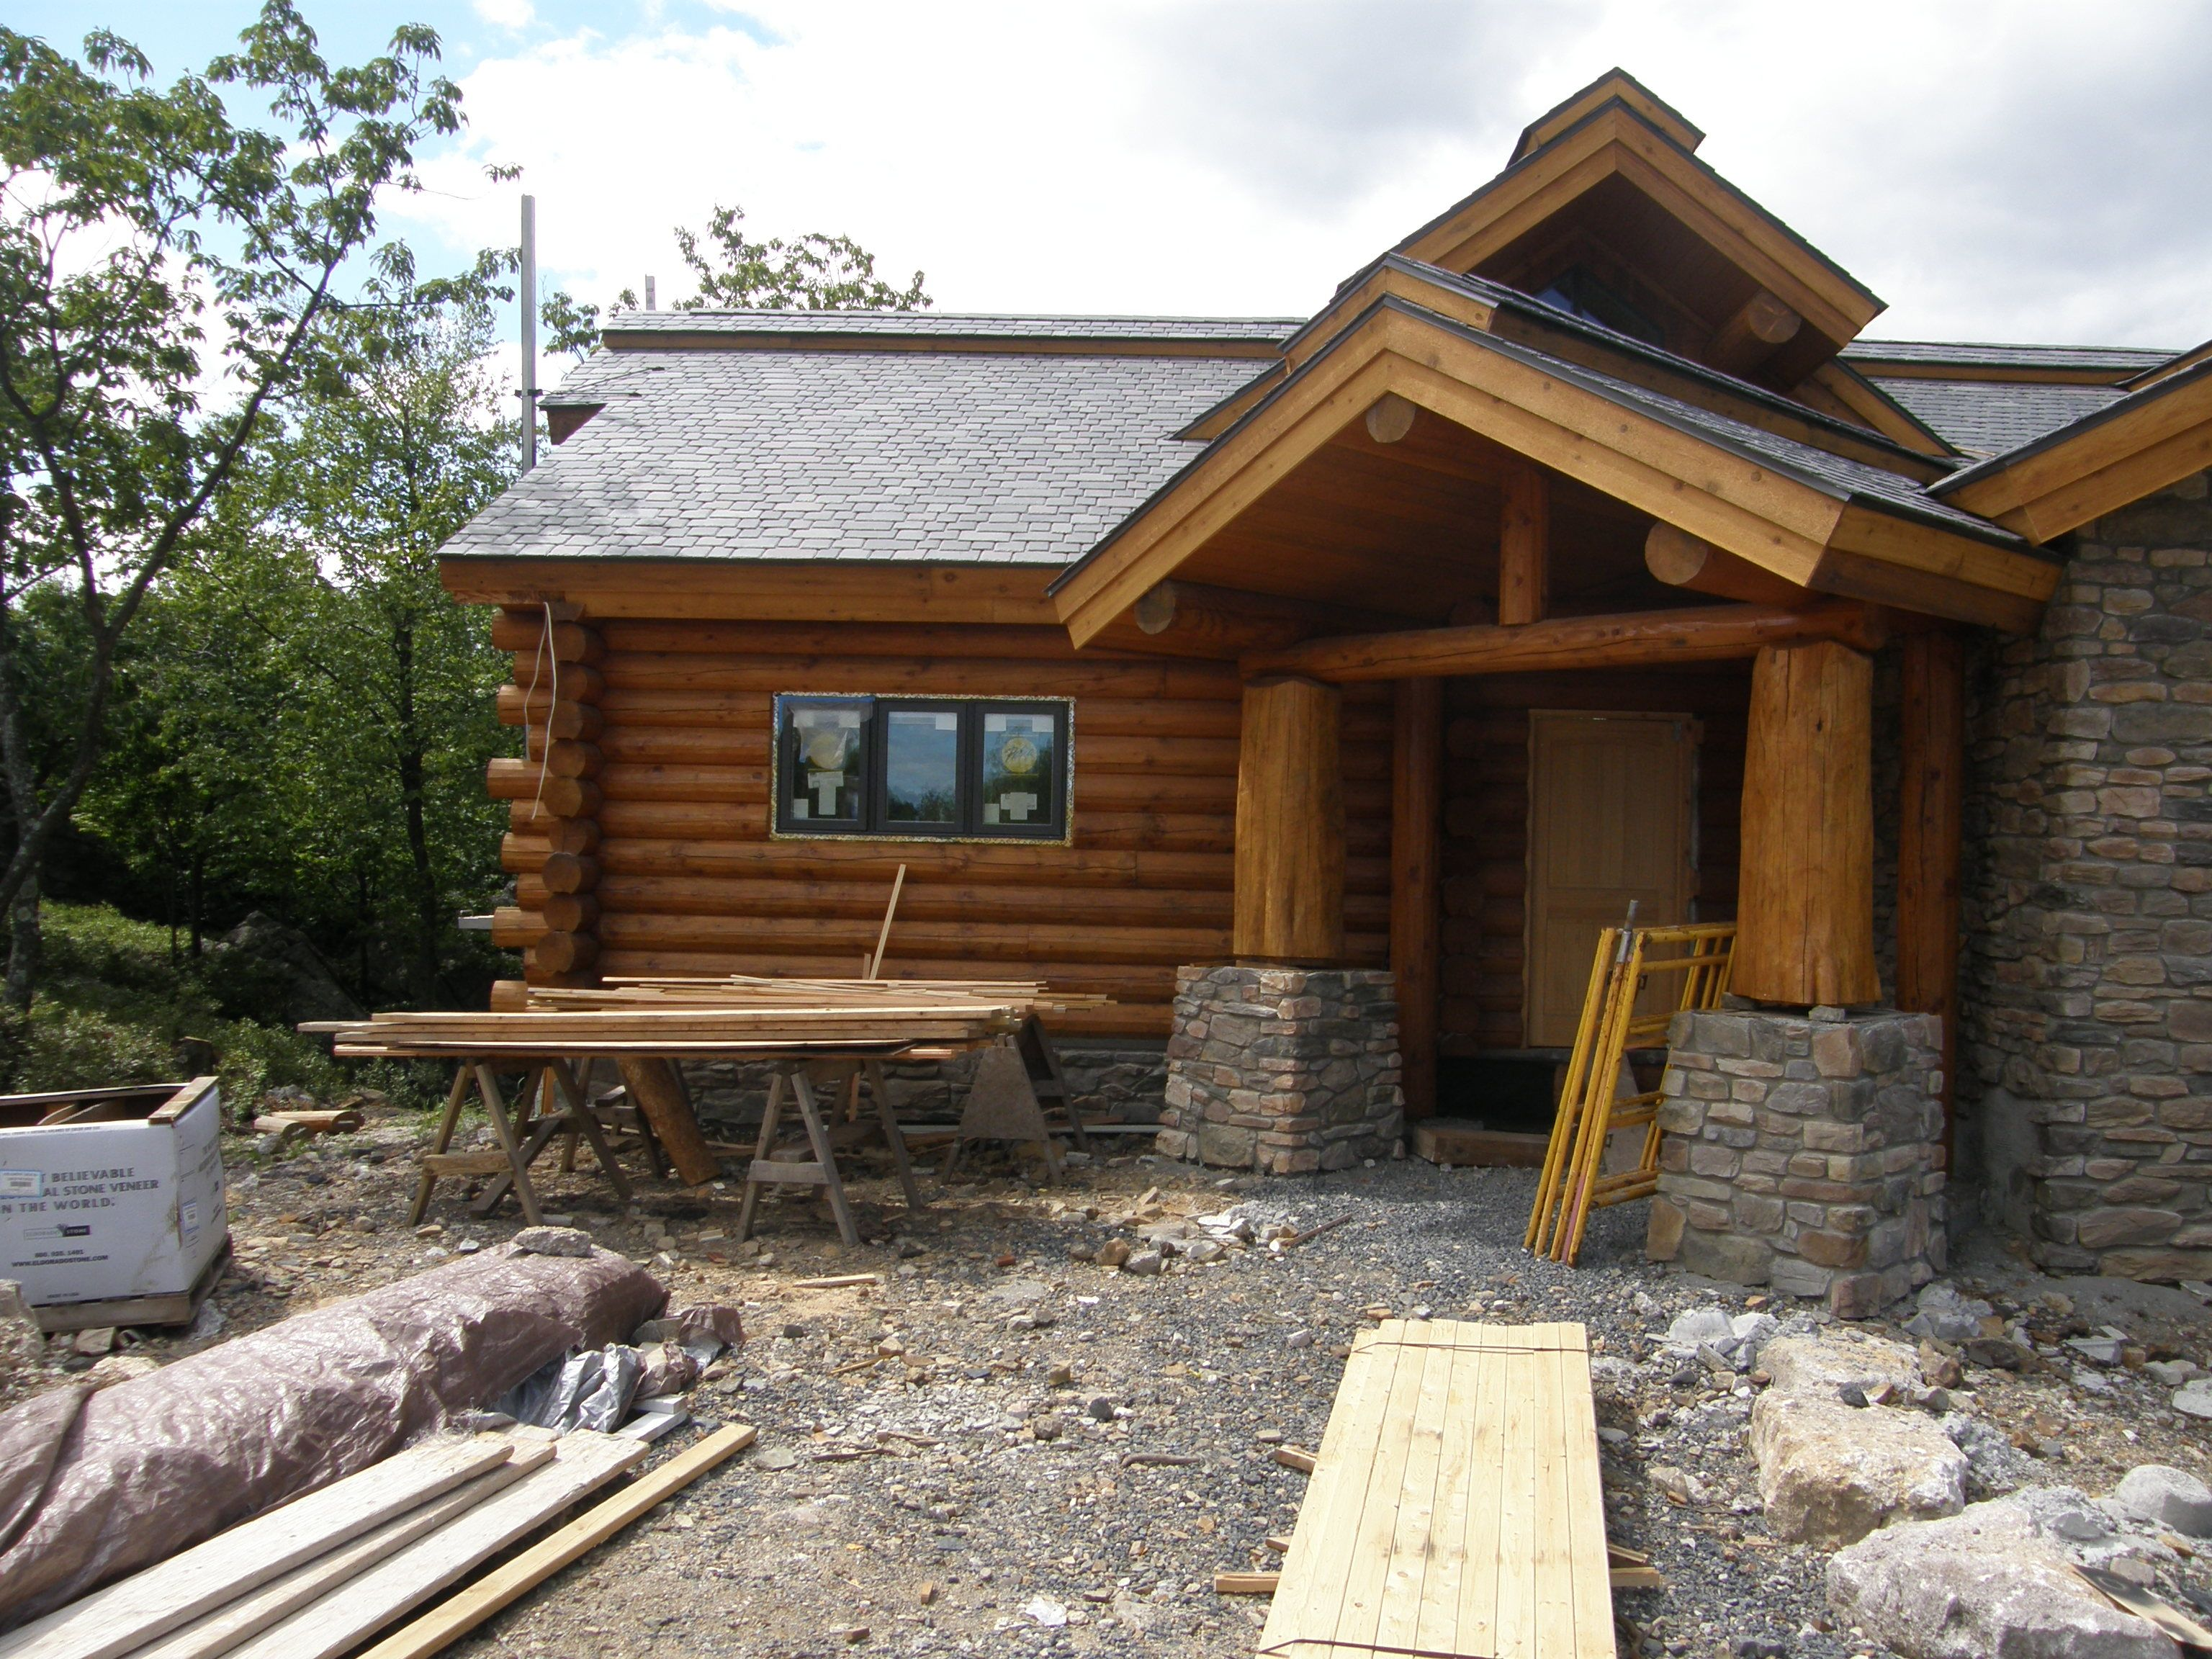 floor own sq for kits tiny traditional look double style that bedroom prefab like hunting cabins free built homes log cheap commercial small home mobile design ft build hemlock wide cabin cabelas pre under modular your manufactured floors plans modern